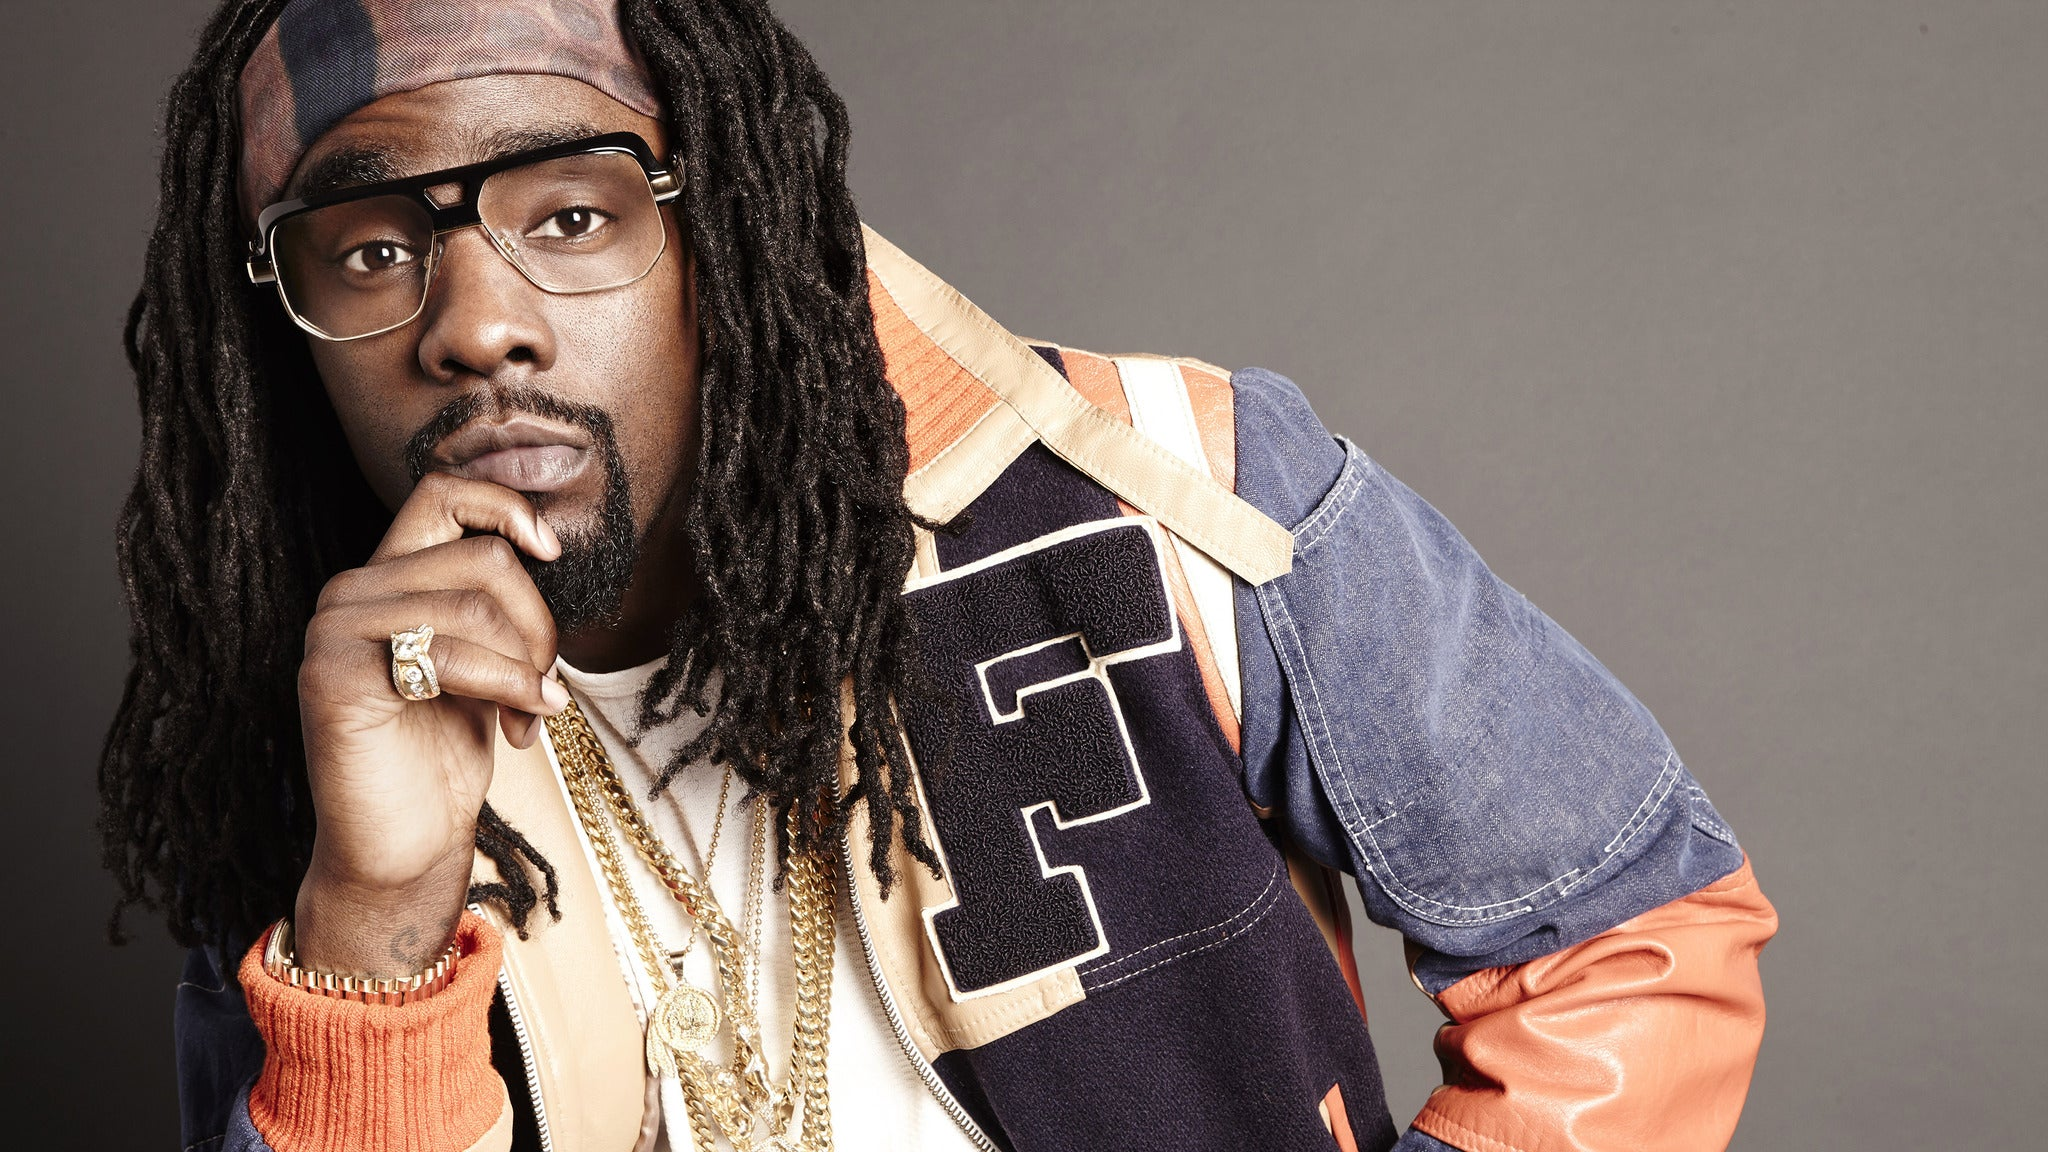 Wale at The Fillmore